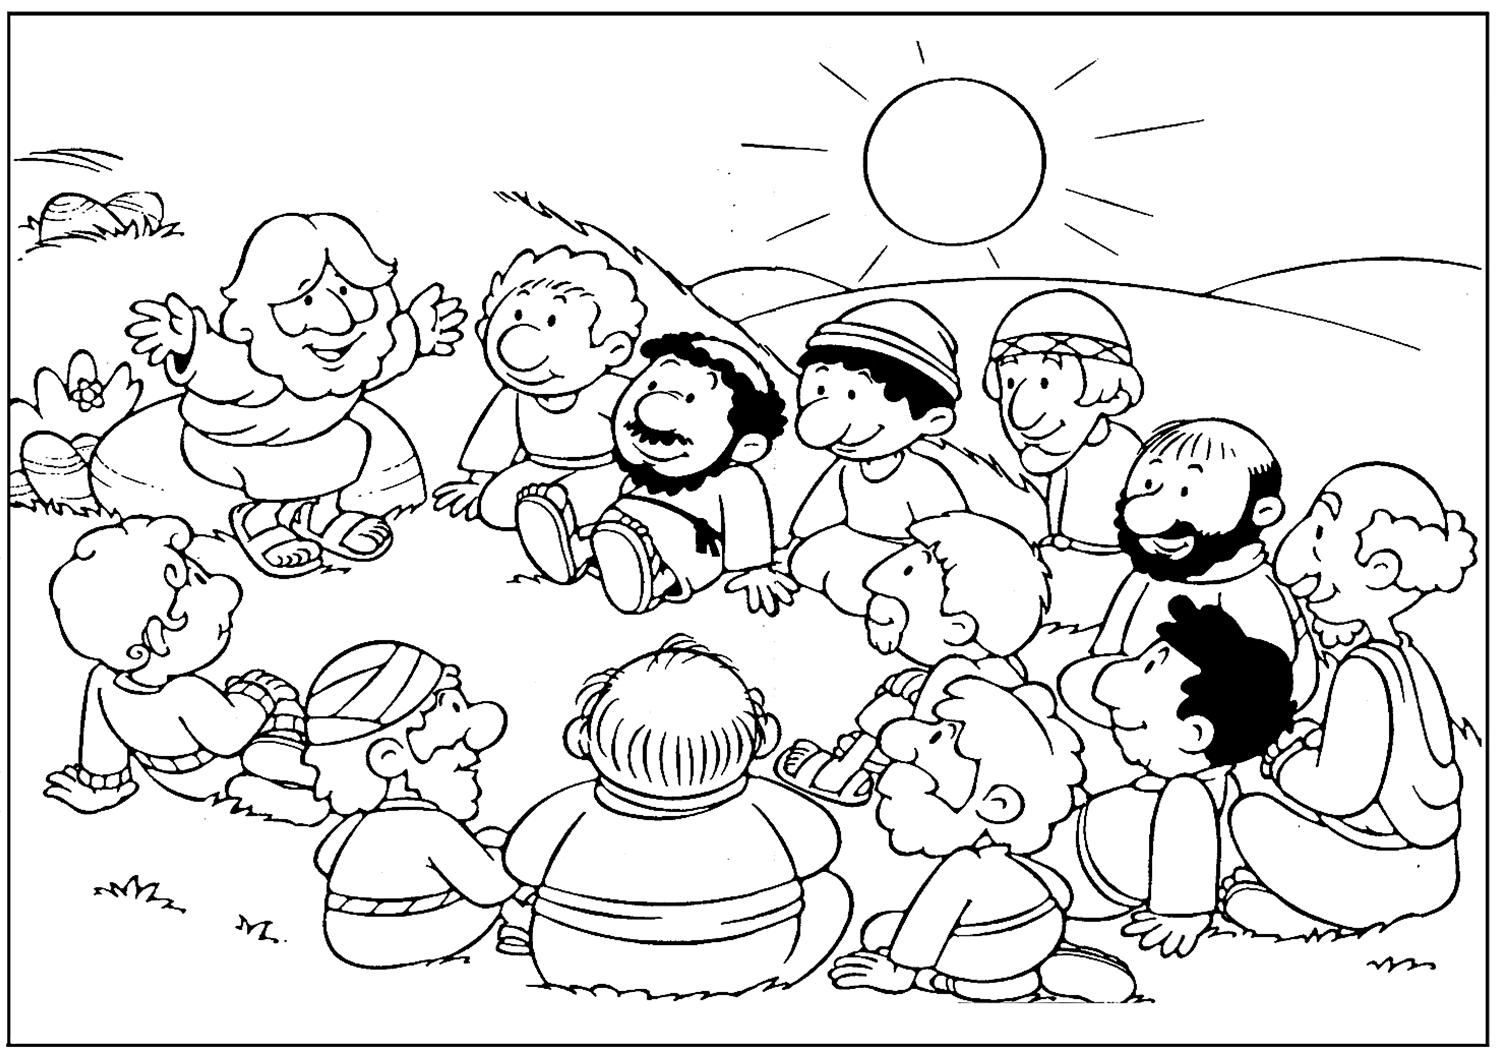 jesus and disciples coloring page jesus coloring pages disciples coloring pages pinterest coloring disciples jesus and page